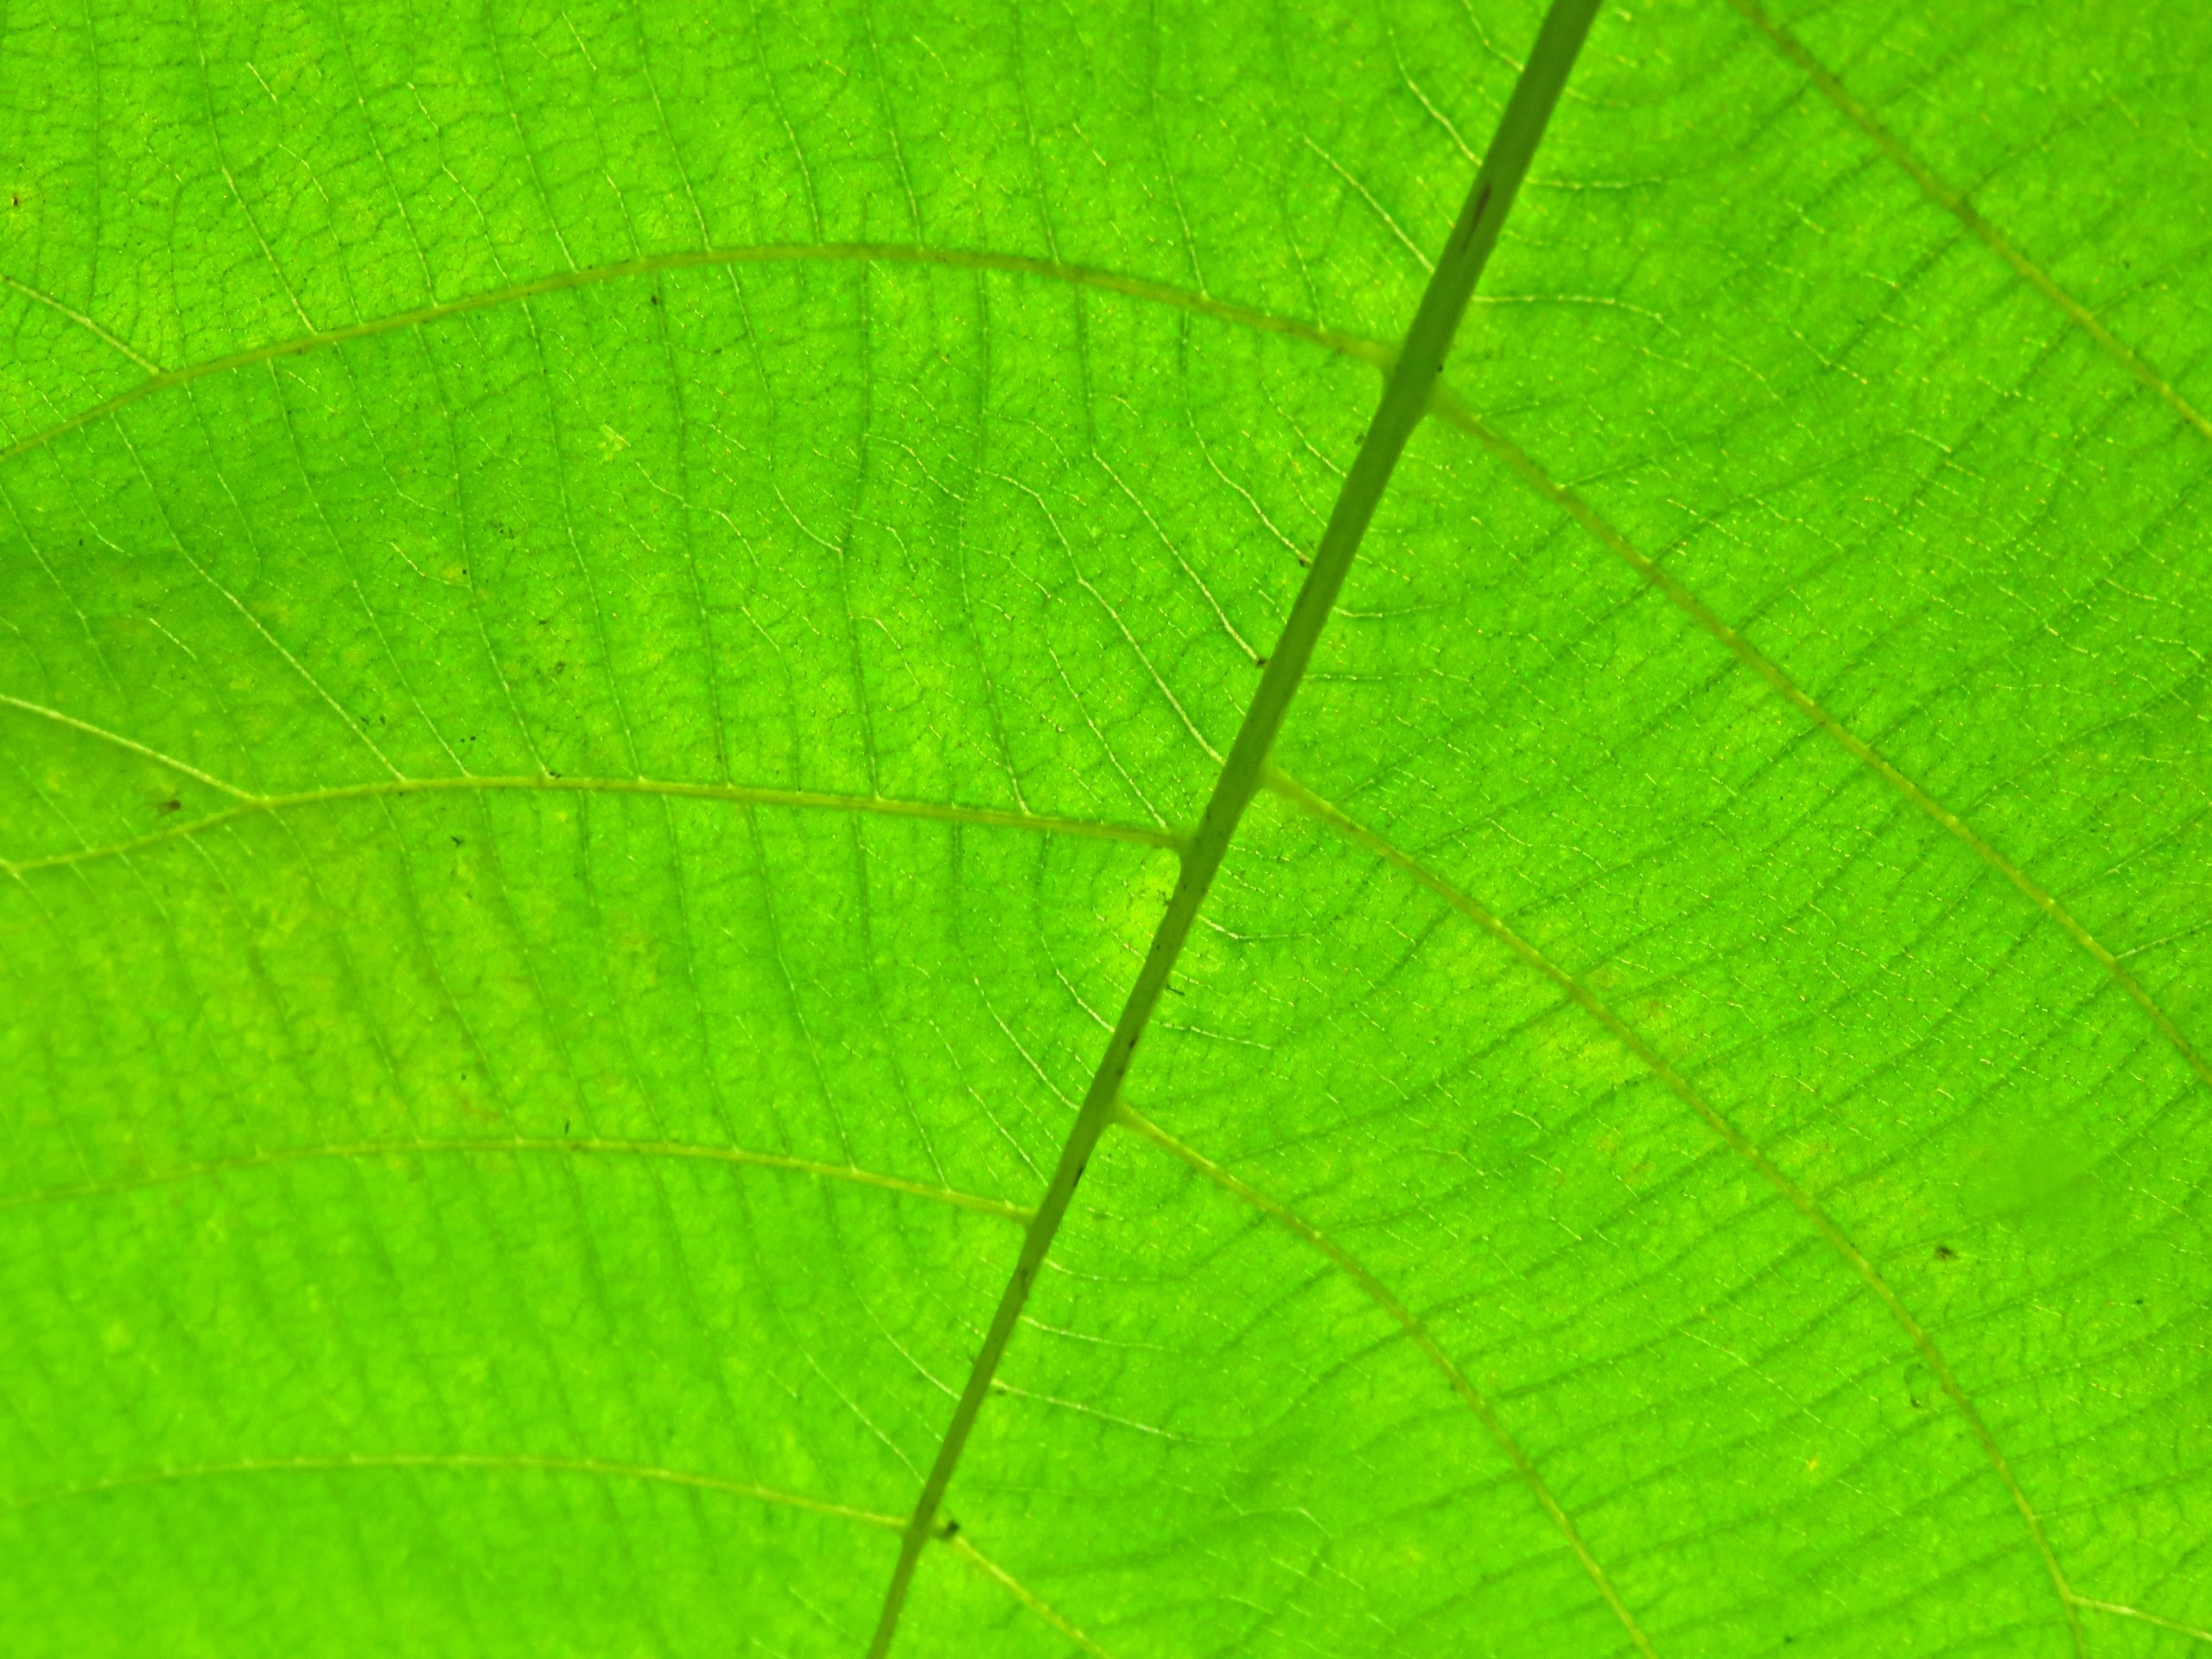 Chlorophyll in green leaves nutrition with Evie Whitehead